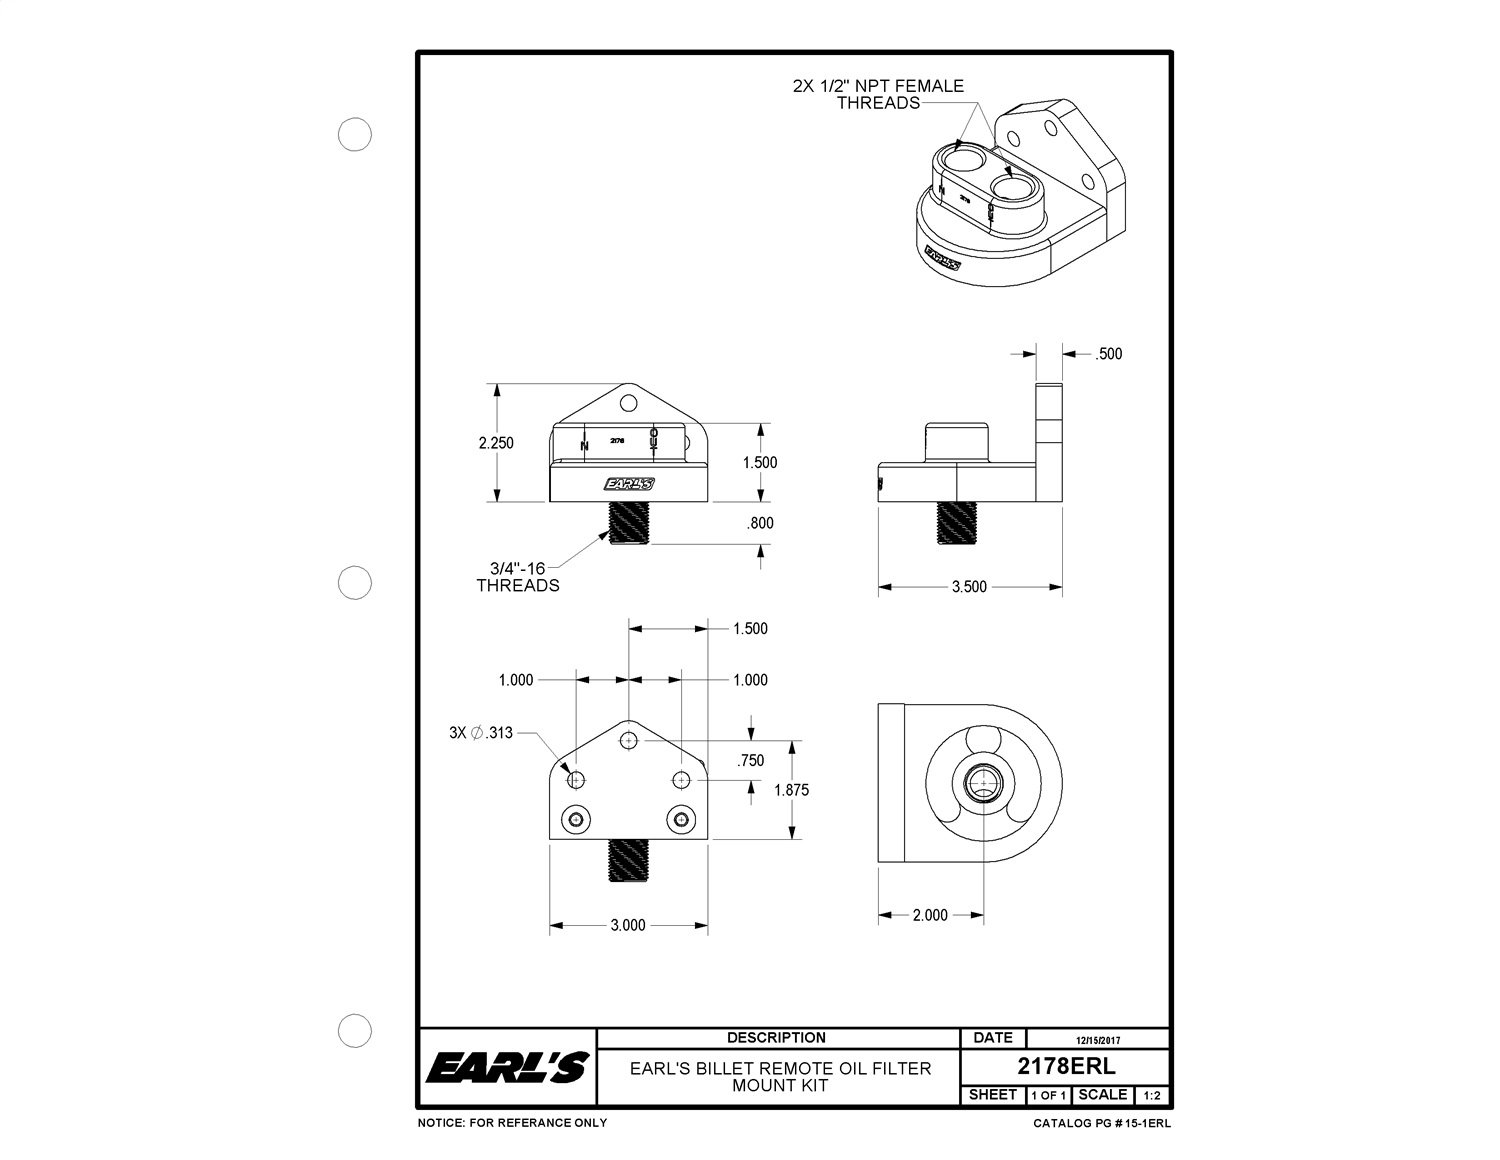 Best Rated In Automotive Performance Engine Coolers Accessories Boss Hoss Trike Wiring Diagram Earls 2178erl Billet Remote Oil Filter Mount Kit 75121r Product Image